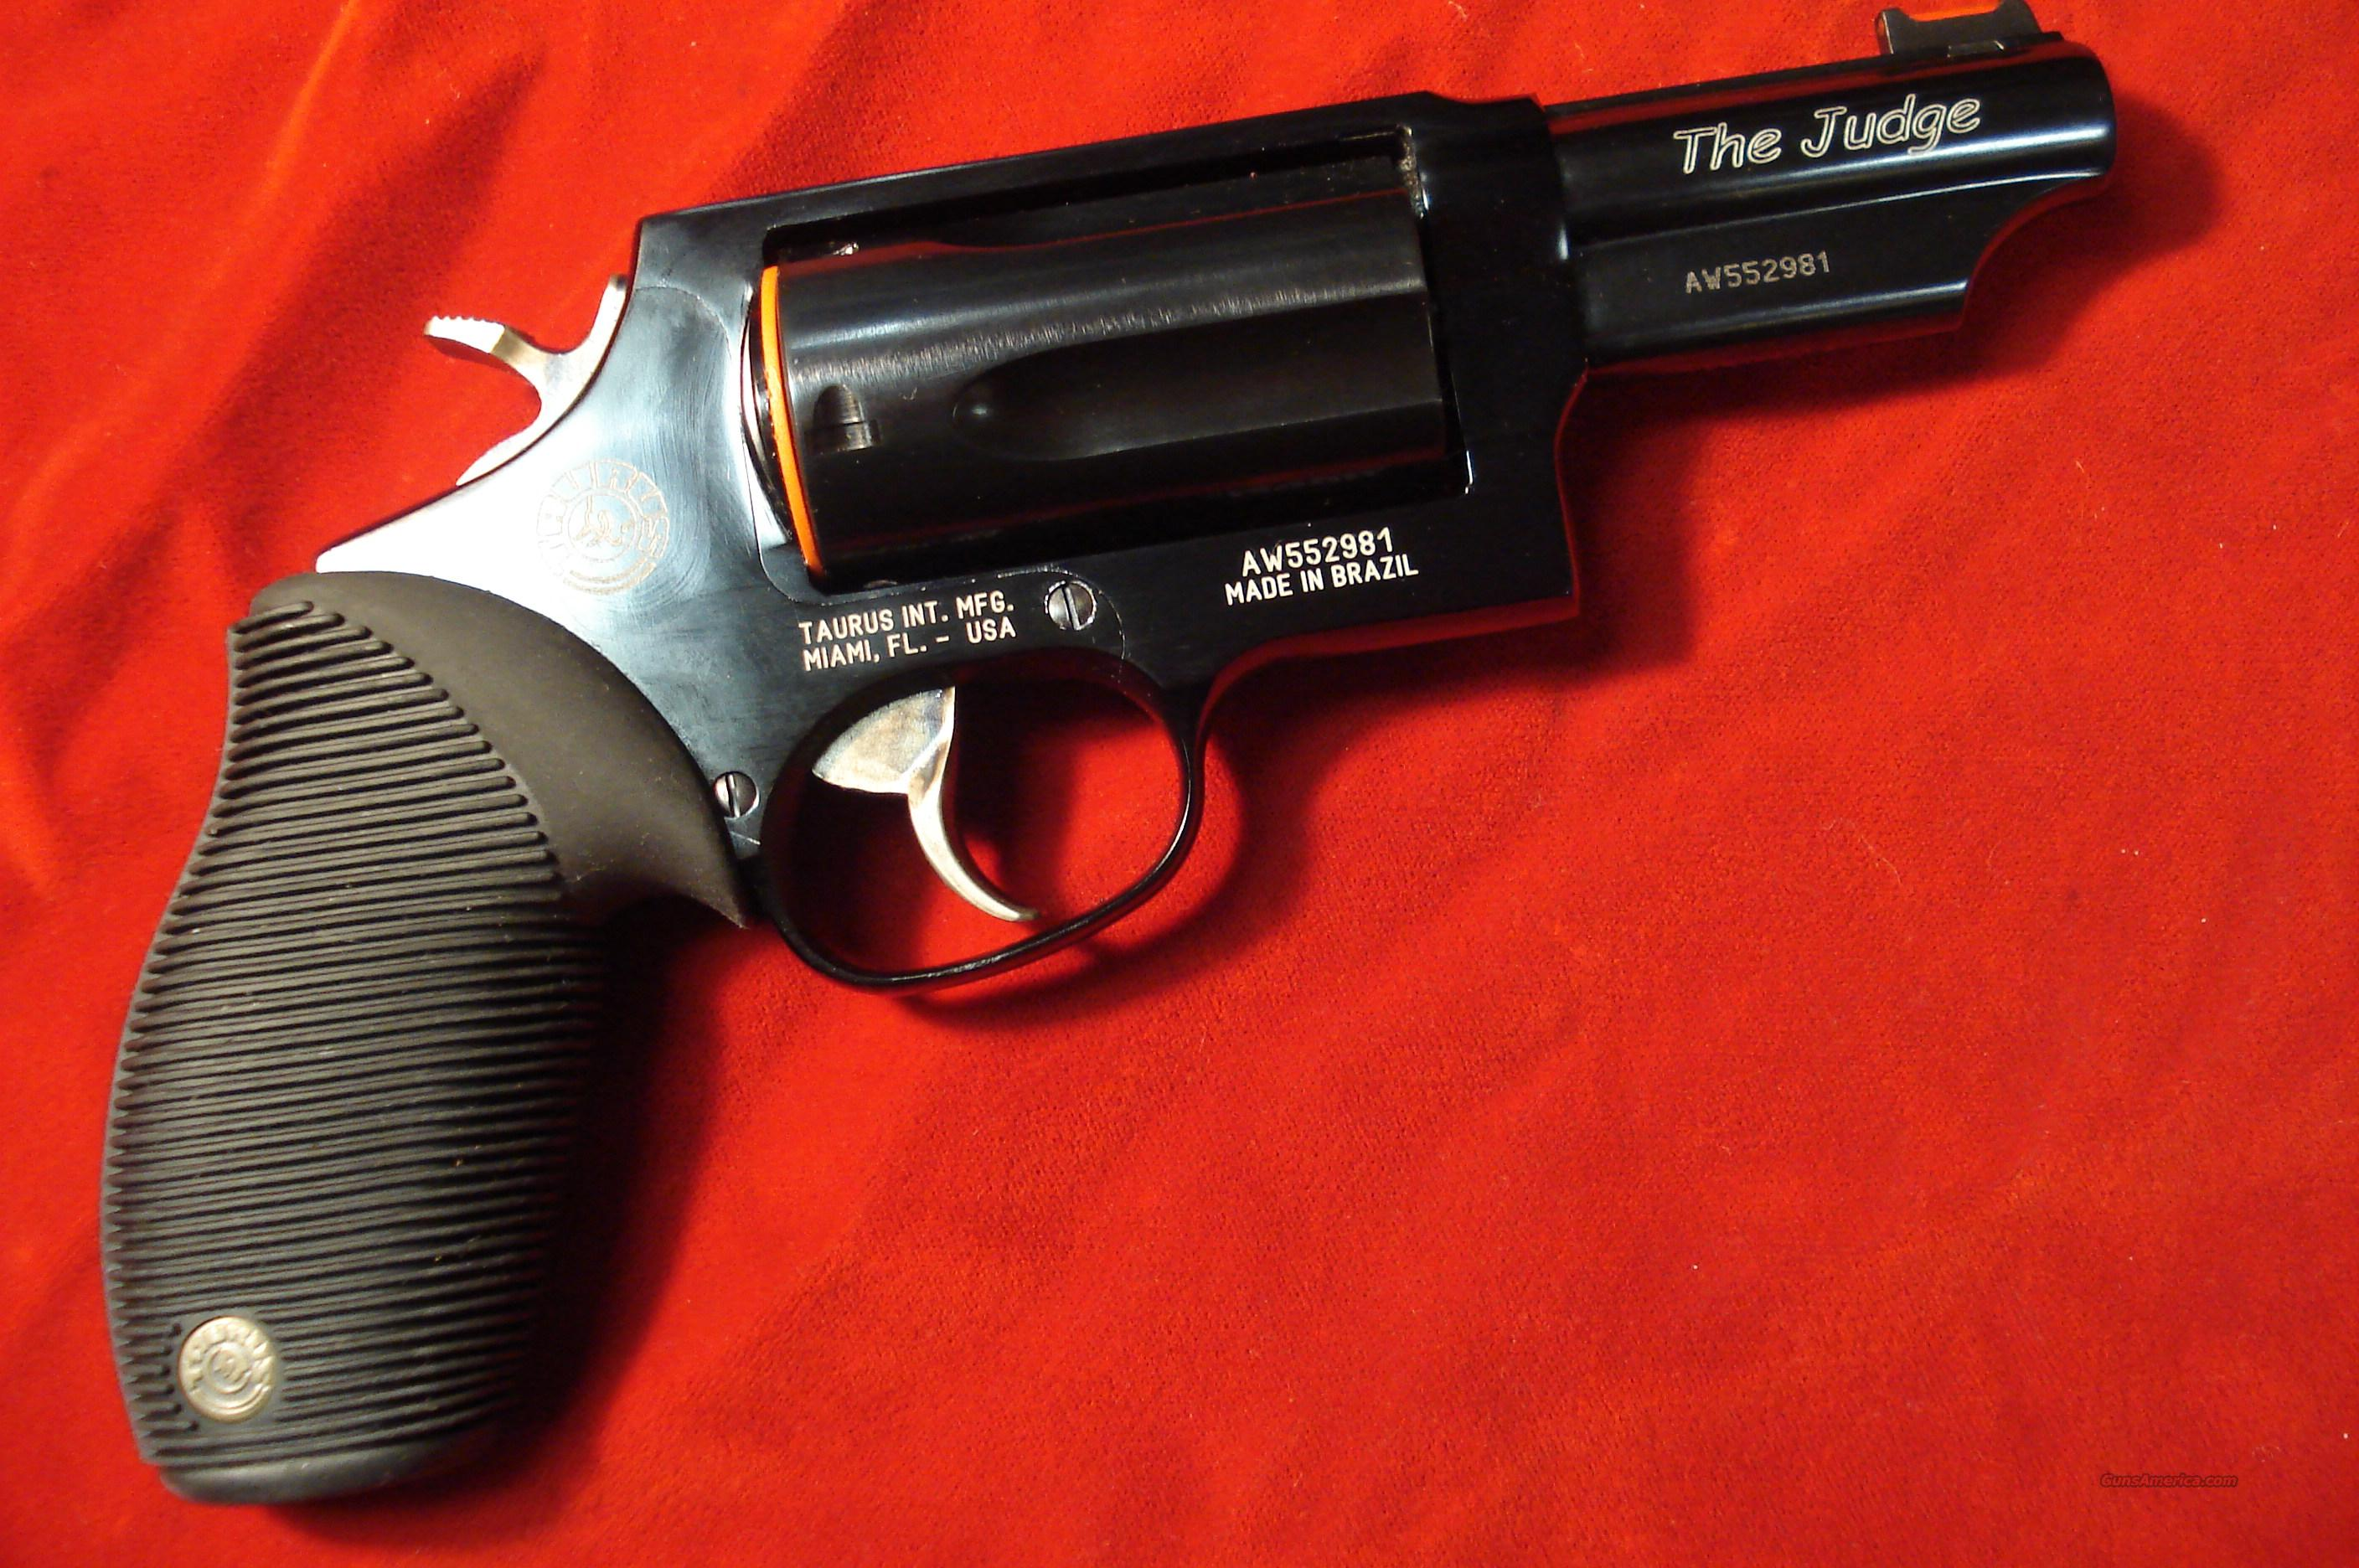 "TAURUS 4510  3"" BLUE ULTRA-LITE  410G REVOLVER ""THE JUDGE"" NEW  Guns > Pistols > Taurus Pistols/Revolvers > Revolvers"